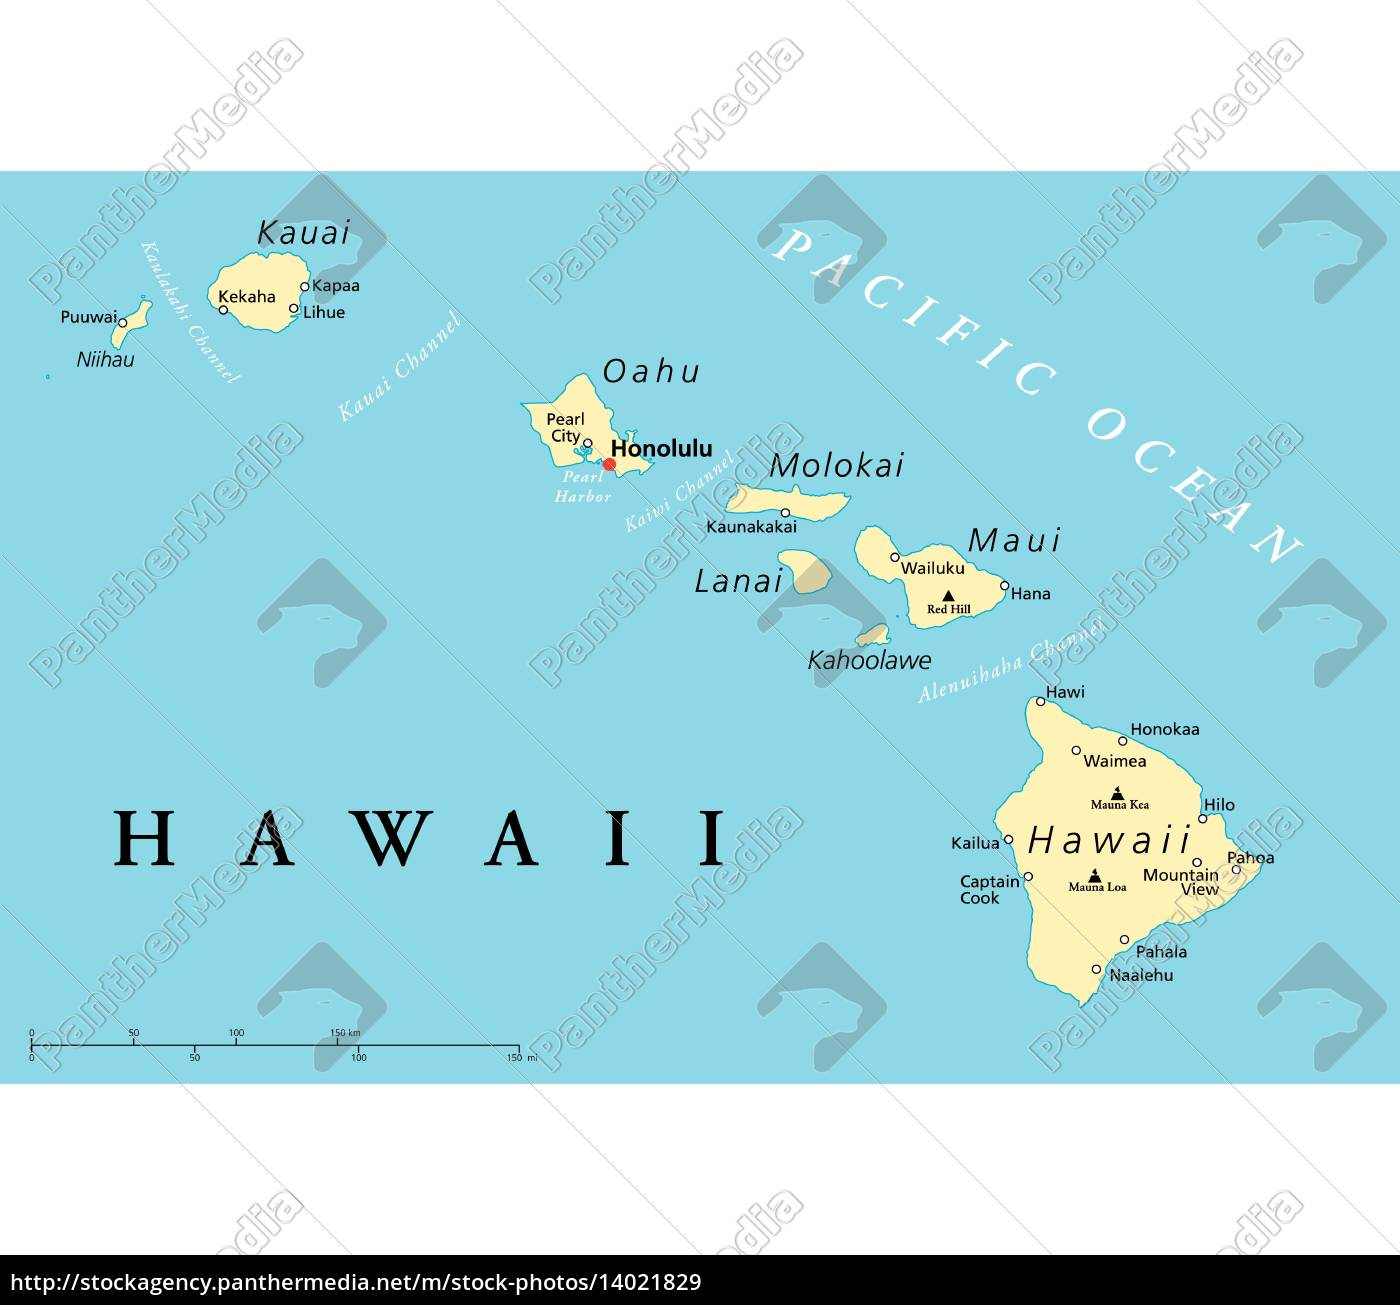 Hawaii Islands Political Map Royalty Free Image 14021829